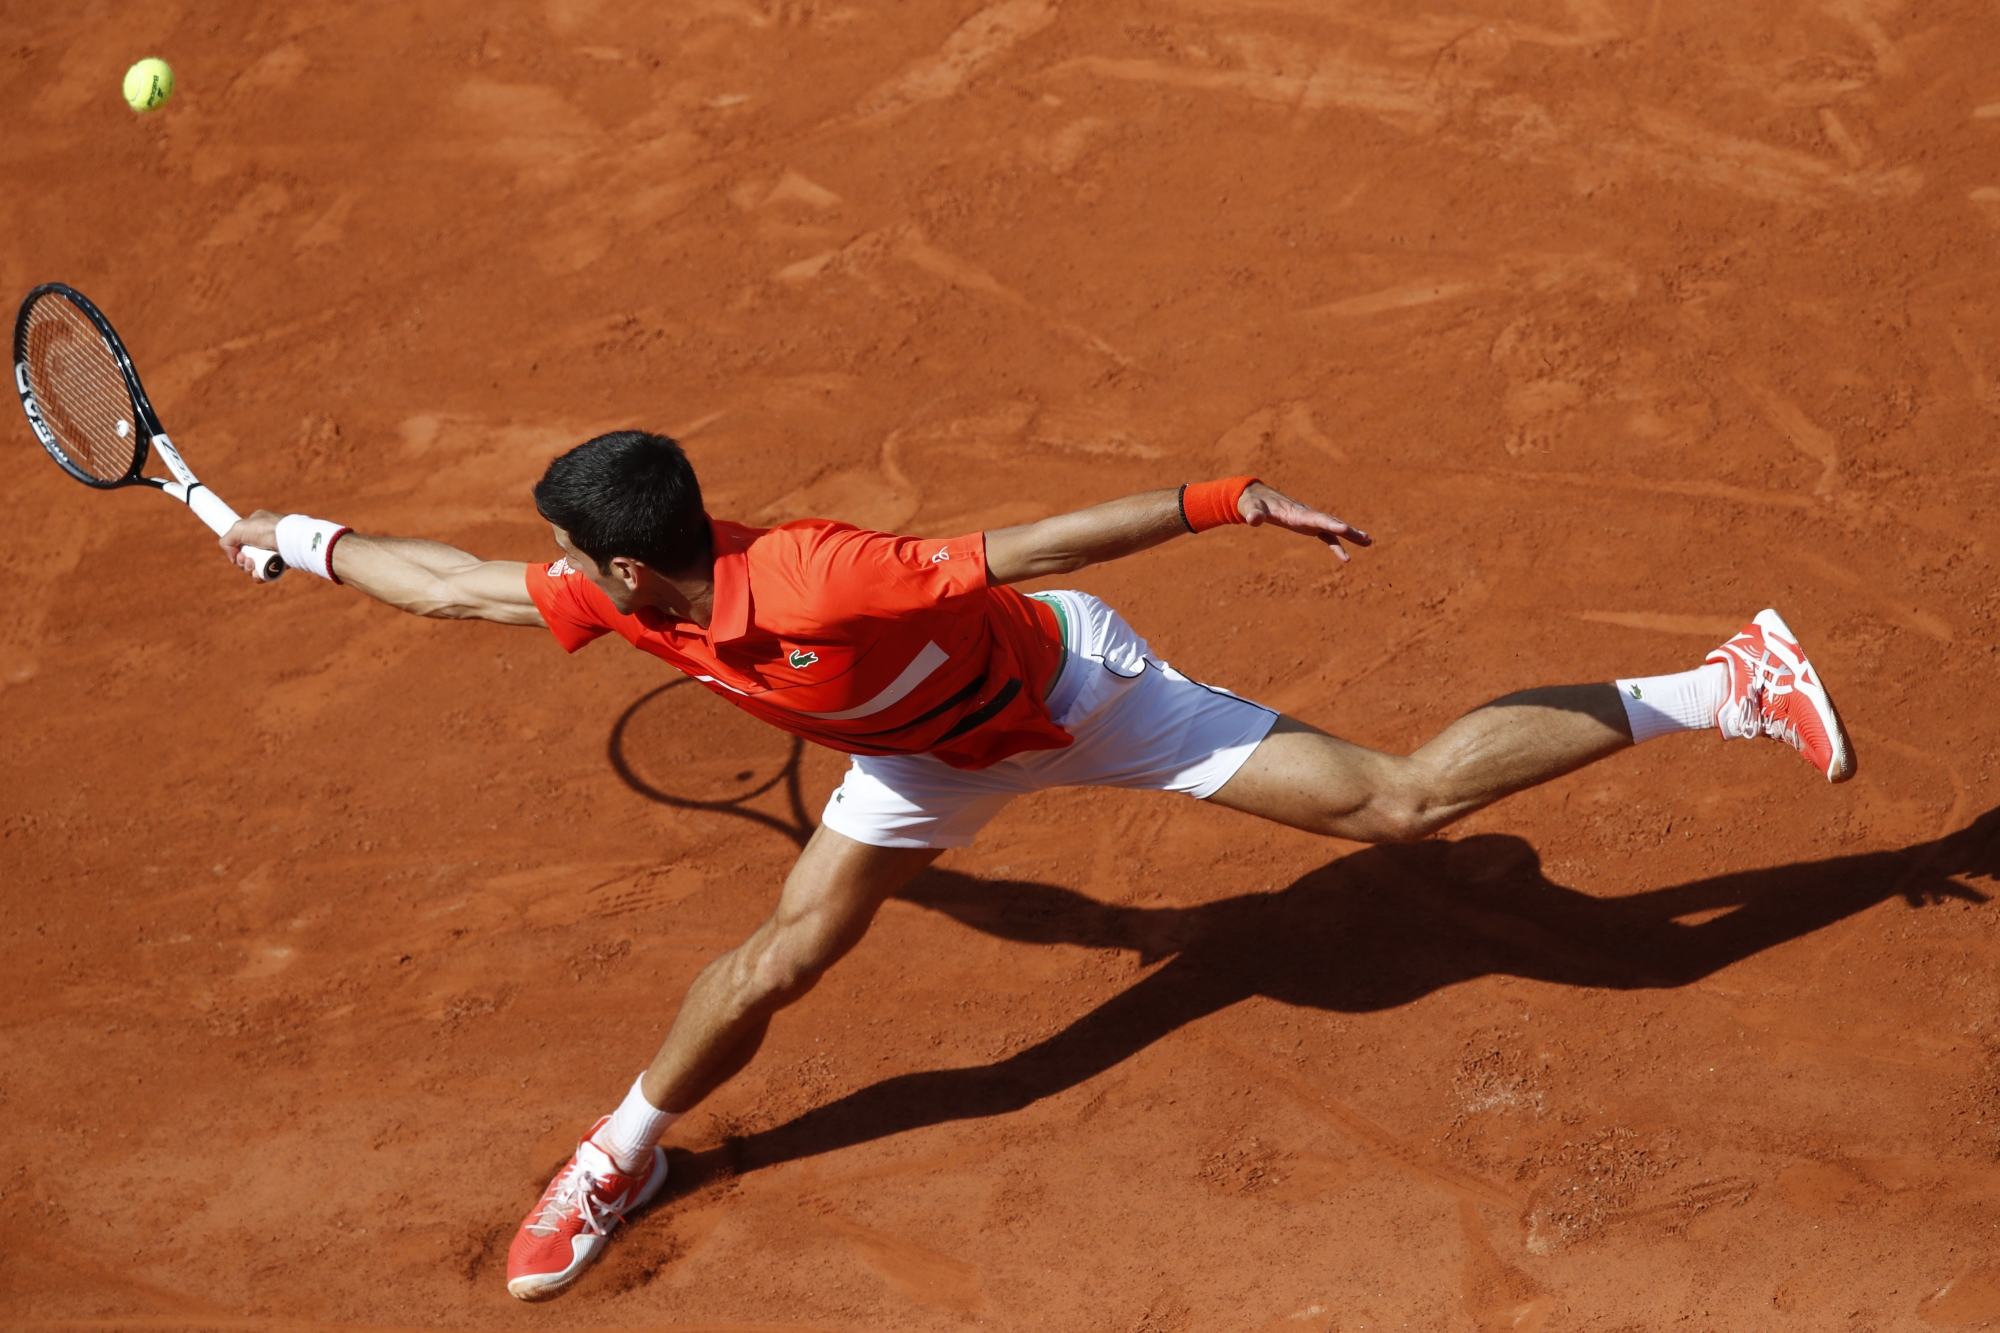 djokovic has tennis history within grasp at the french open